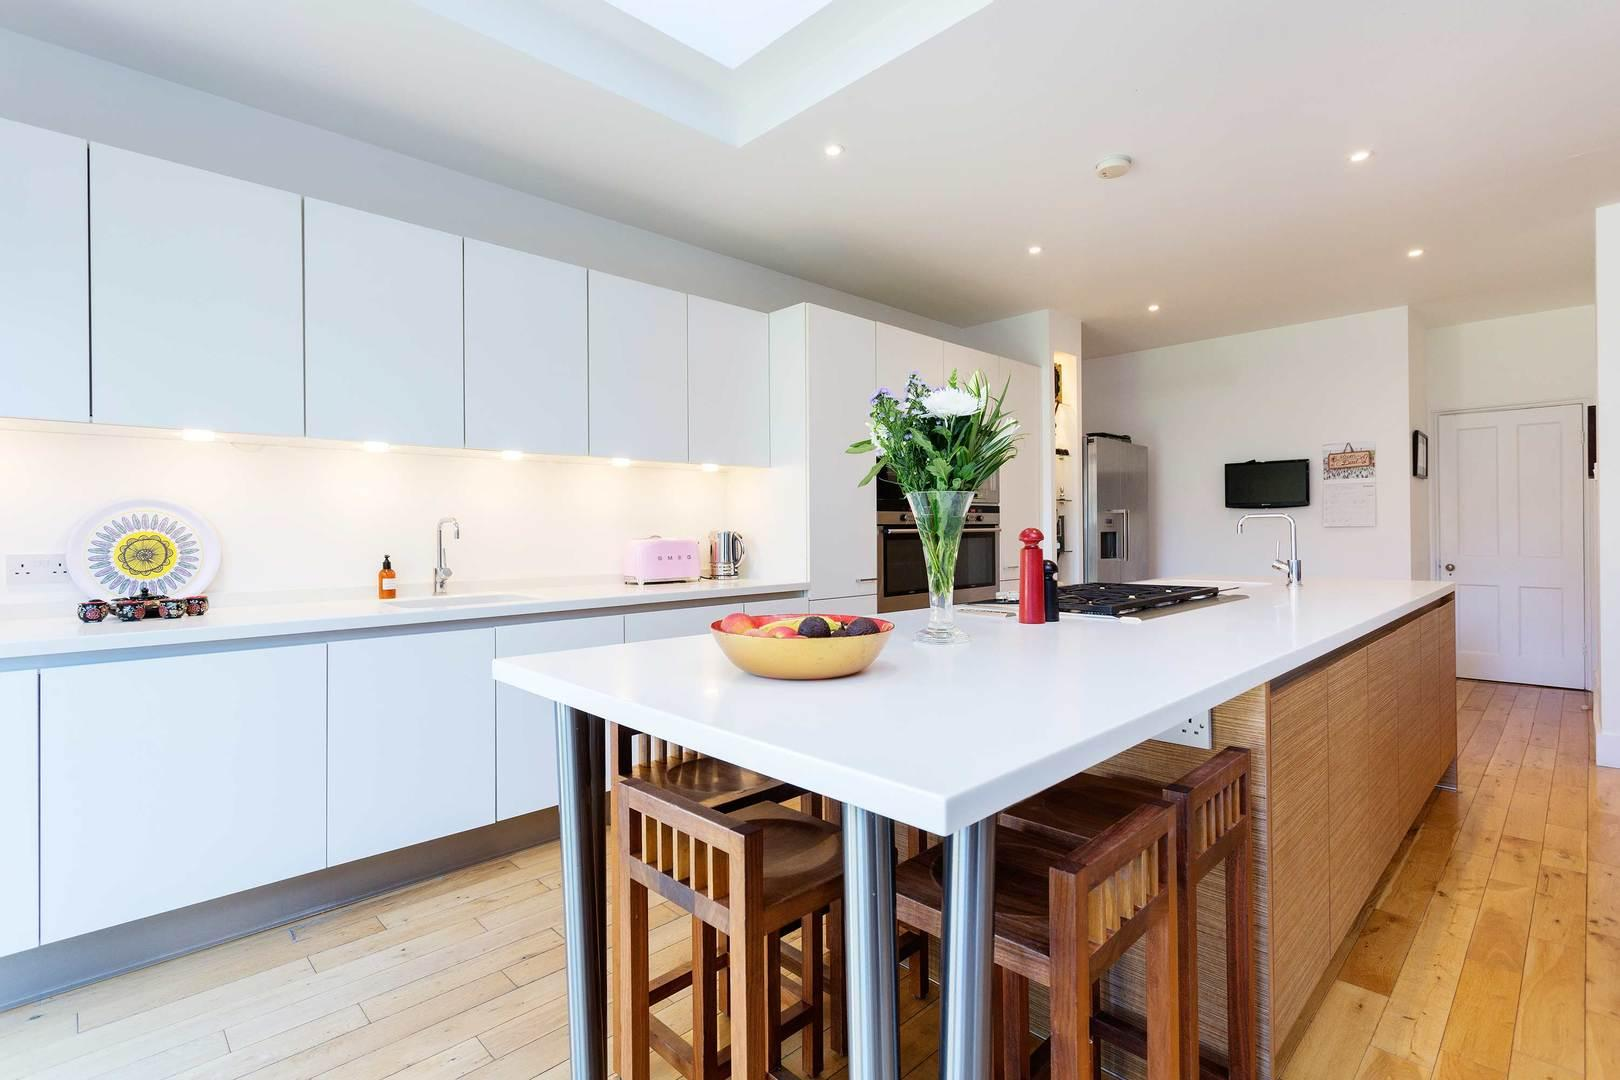 Property Image 1 - Stylish 5 bedroom Family House in Leafy Clapham